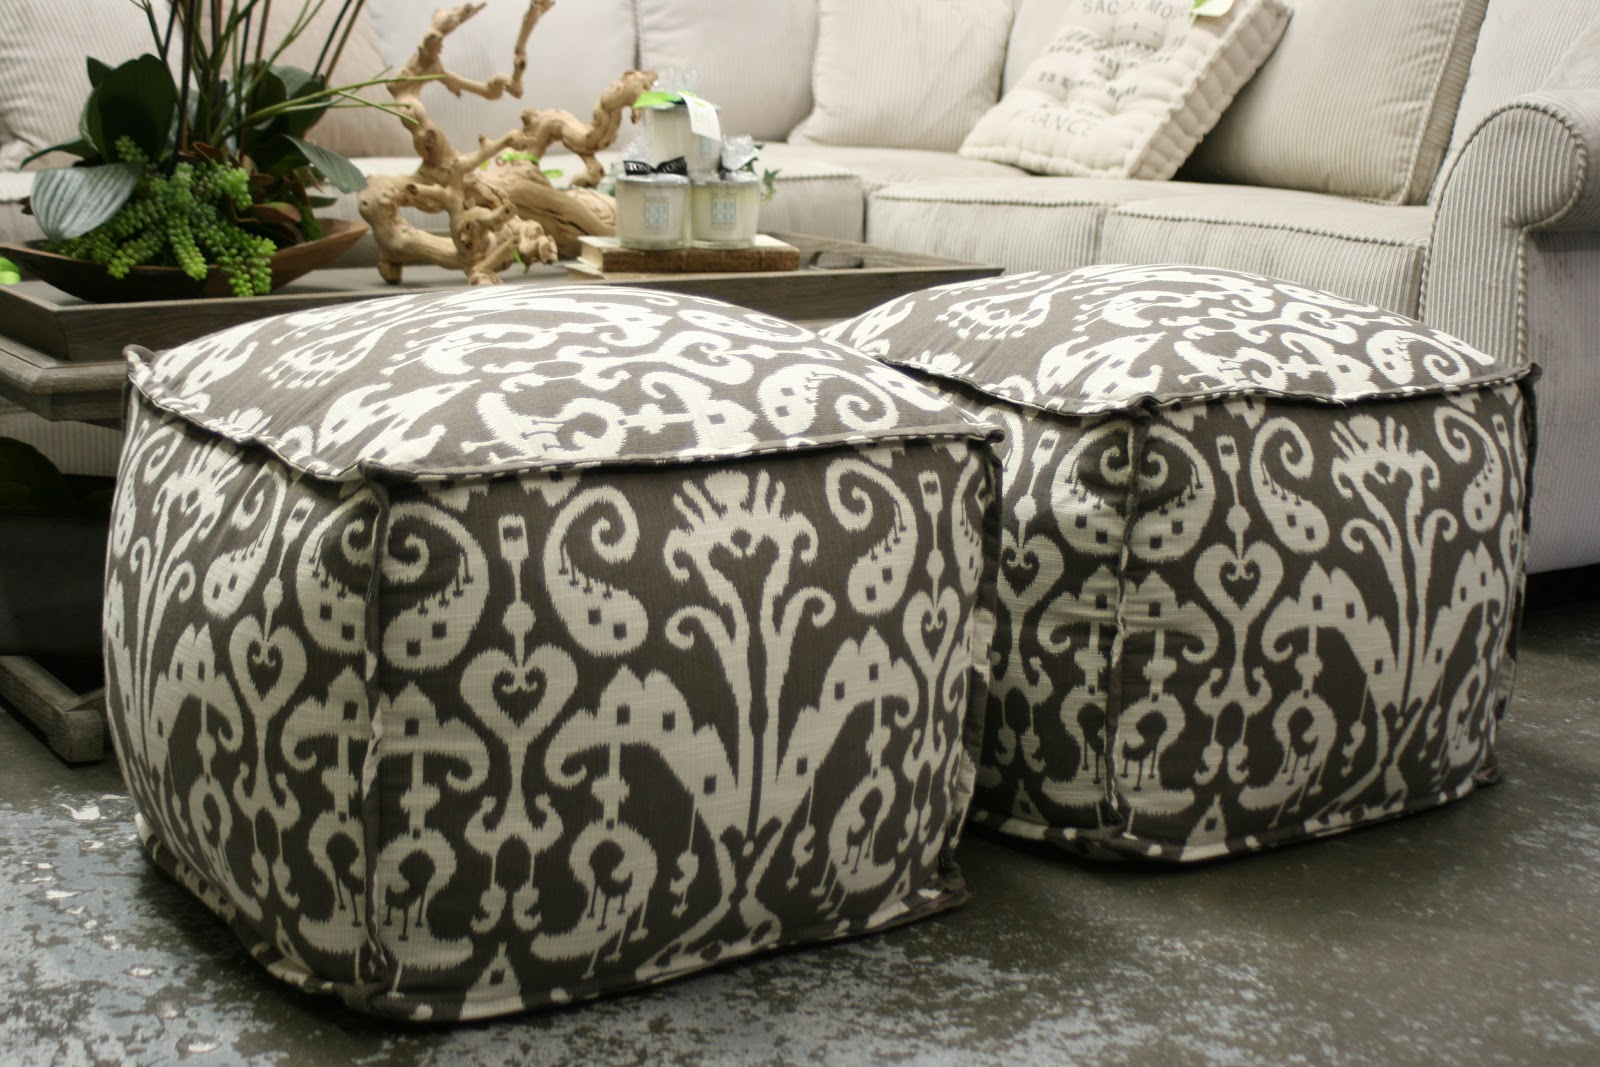 chartreuse home furnishings: pouf! your seating problems are gone